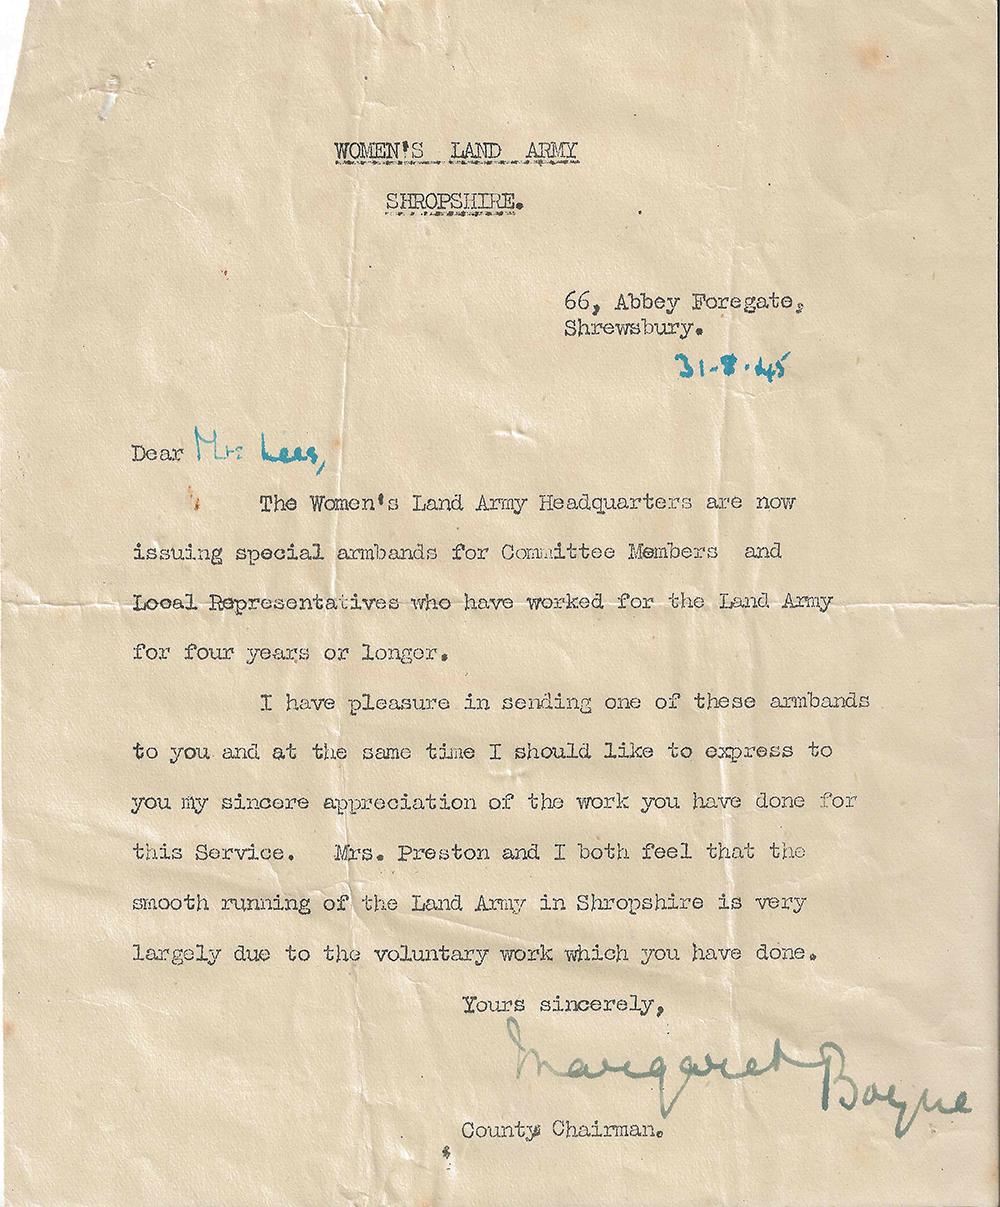 Committee Member Award Letter, 31st August 1945 Source: The late Shropshire historian Rachel Brenda Lees